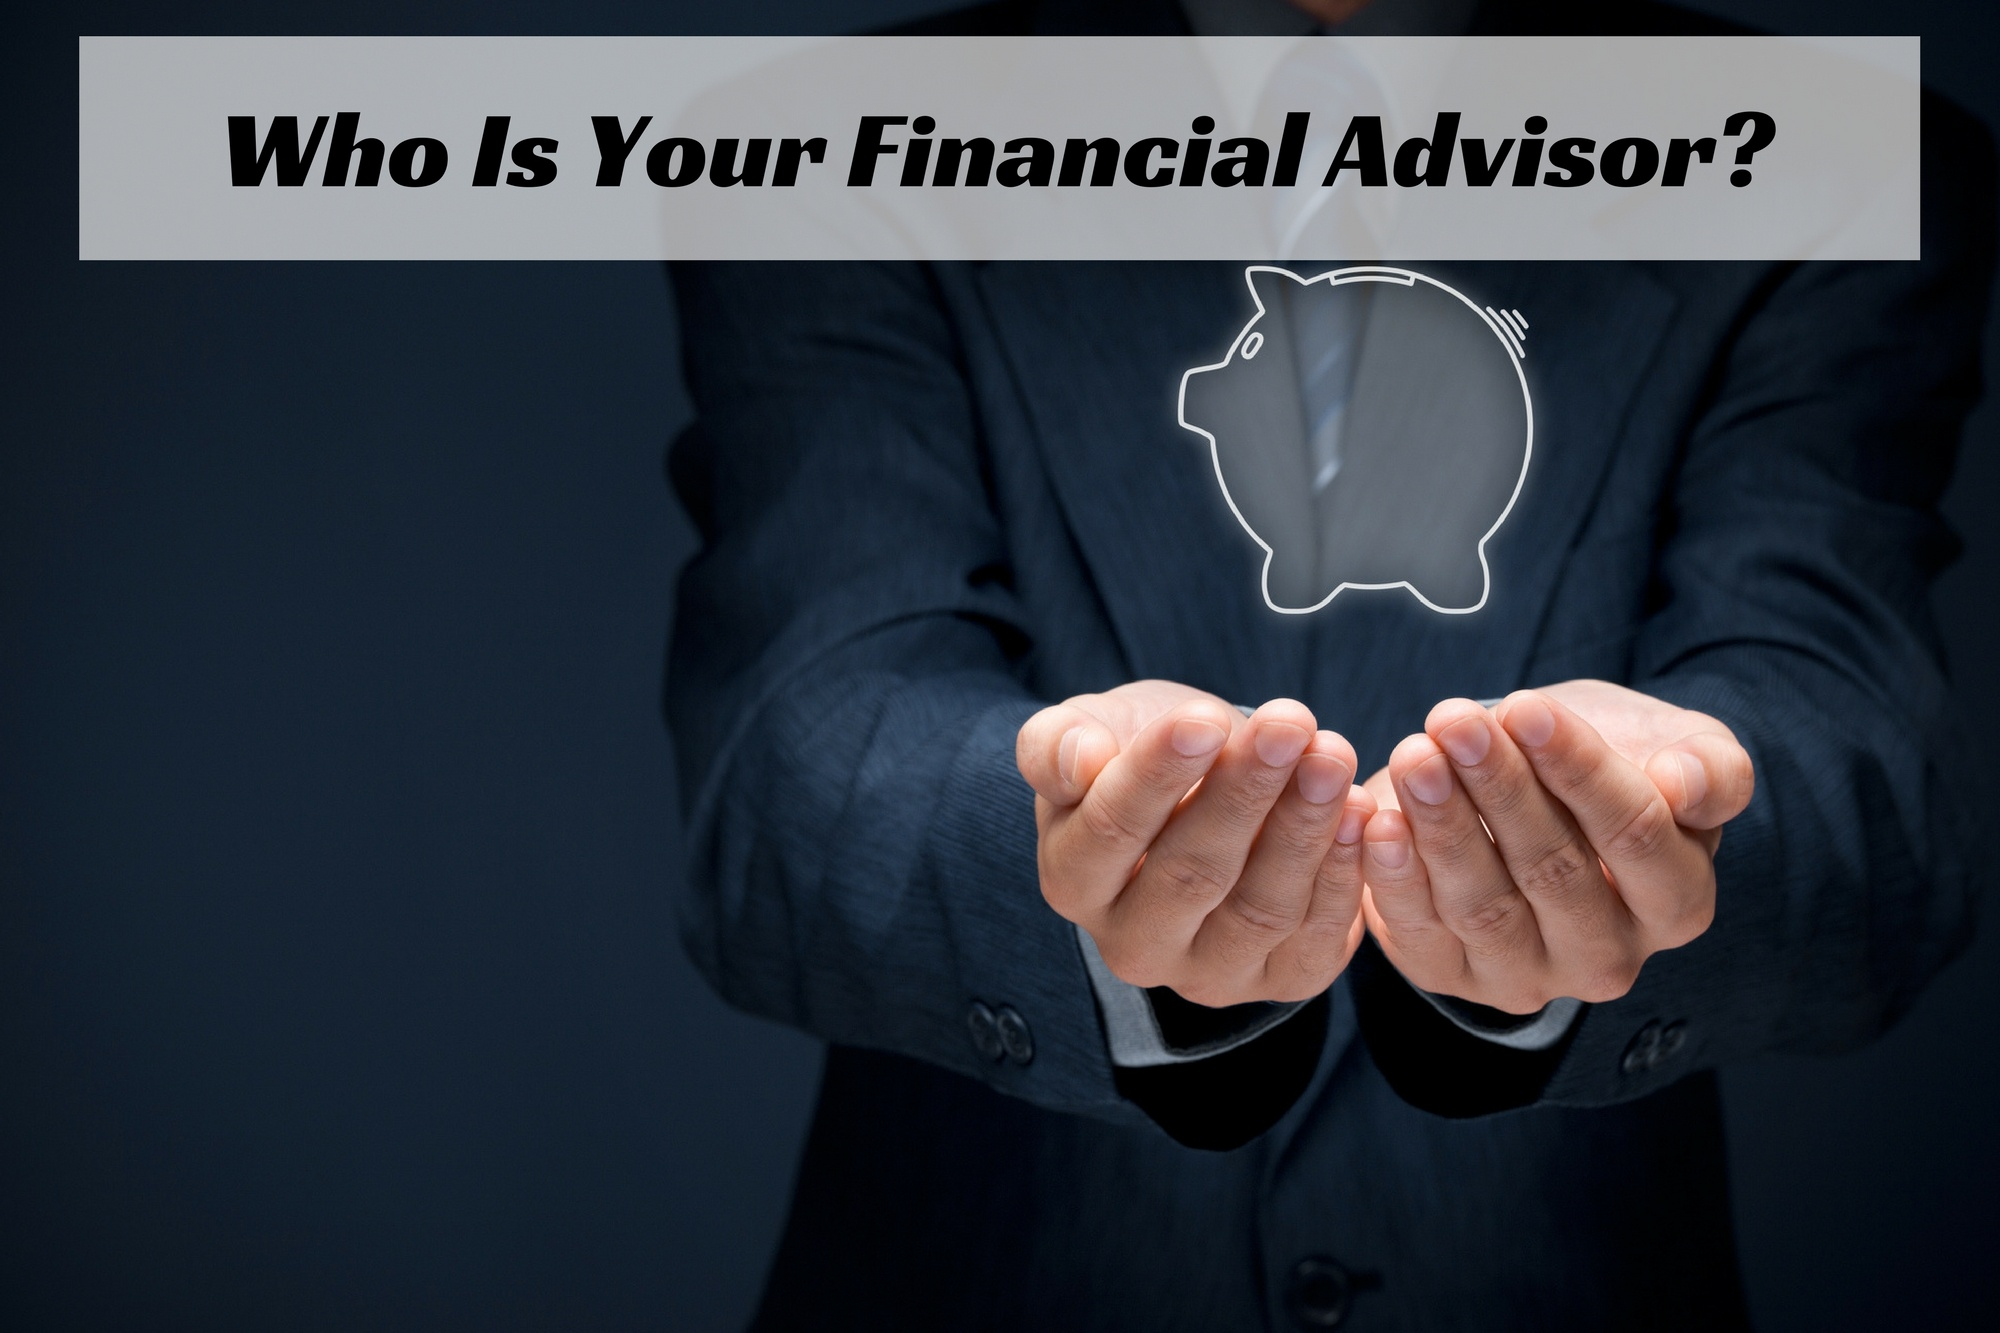 dating your financial advisor Helping people get a fair shake on wall street since 2011, now teaching online courses fire your financial advisor is the first online course at the white coat.